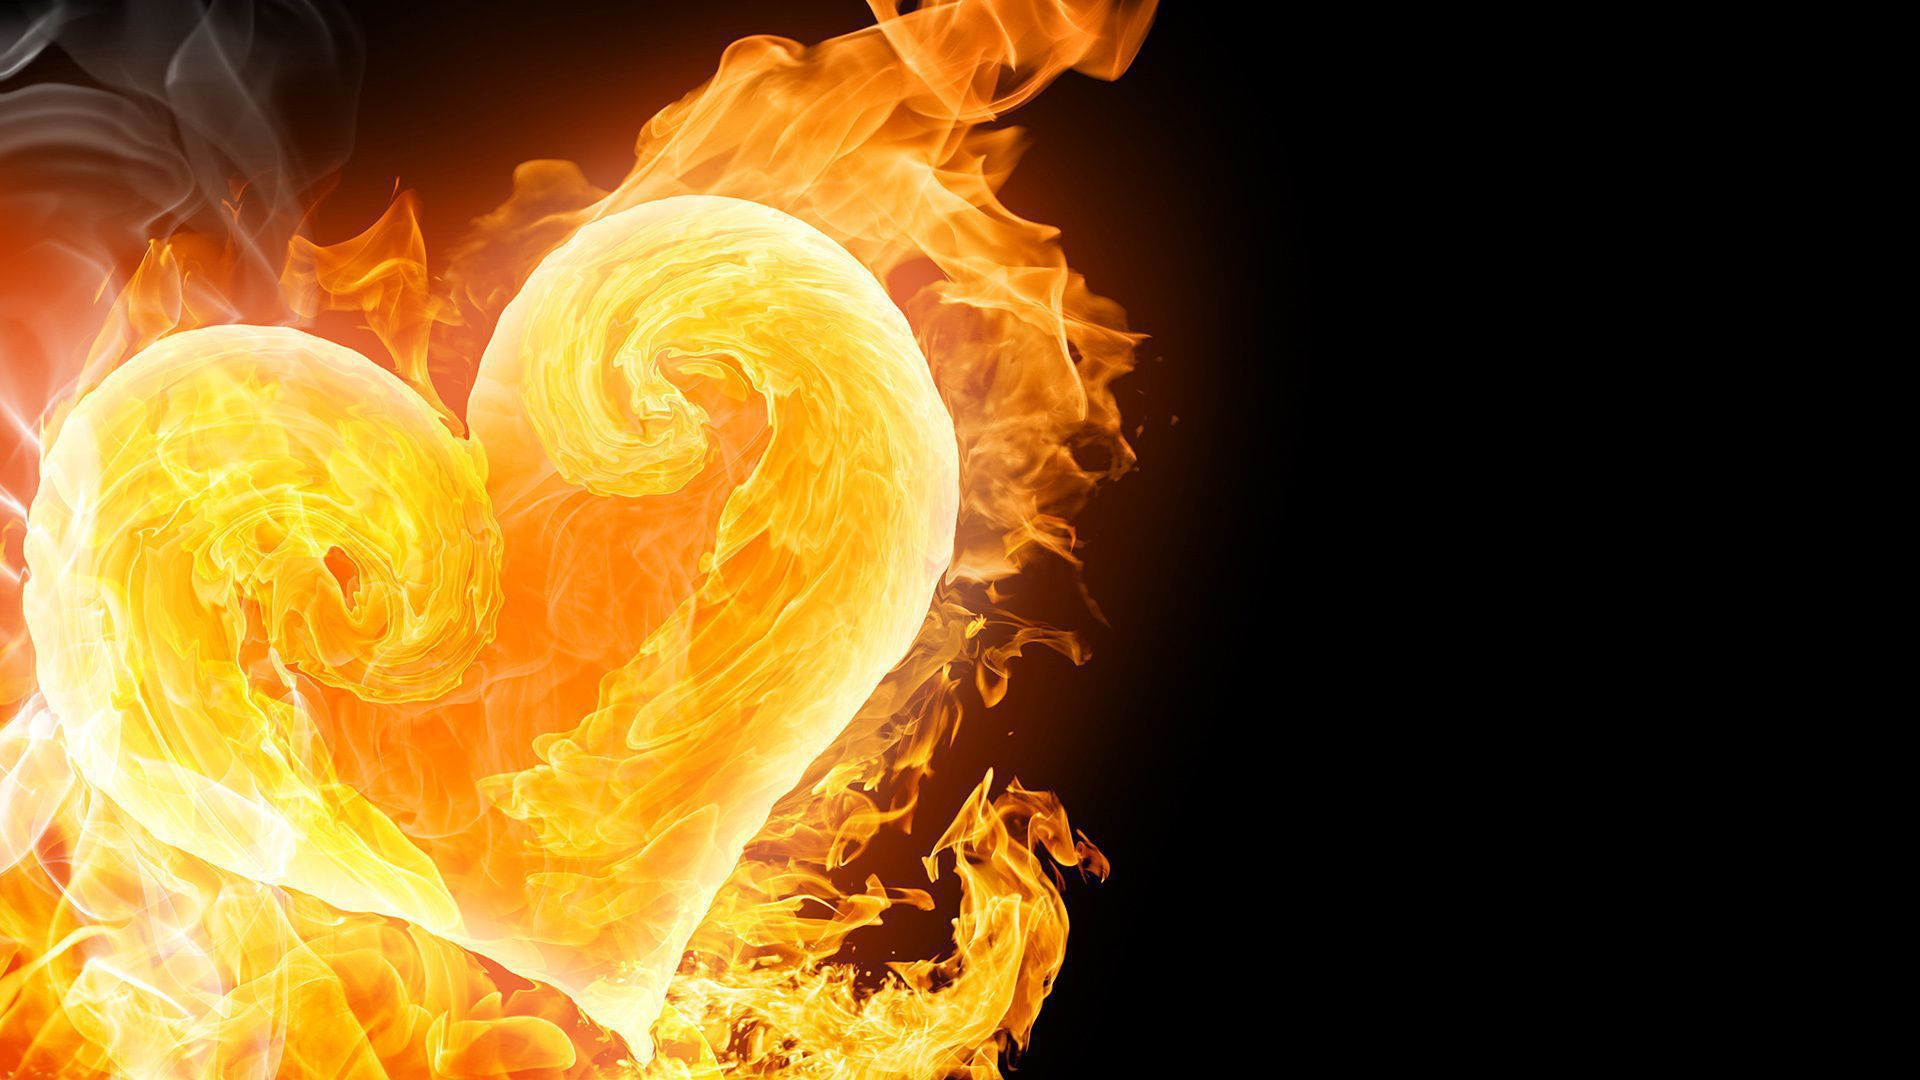 Burning Heart Wallpapers HD